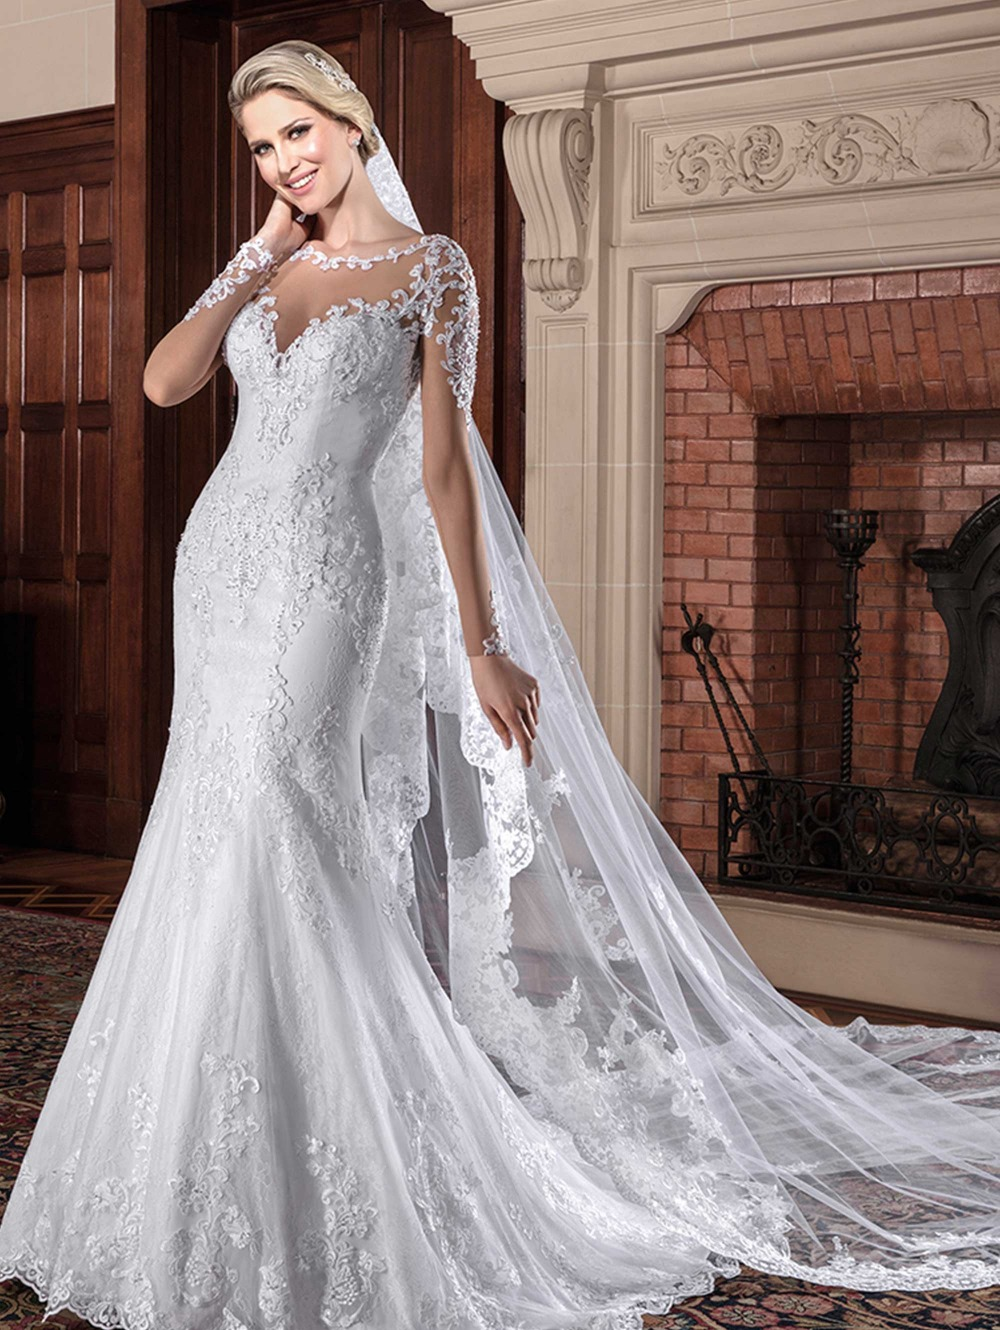 Robe de mariage applique long mermaid wedding dress 2016 cap sleeve scoop neck lace bridal dresses